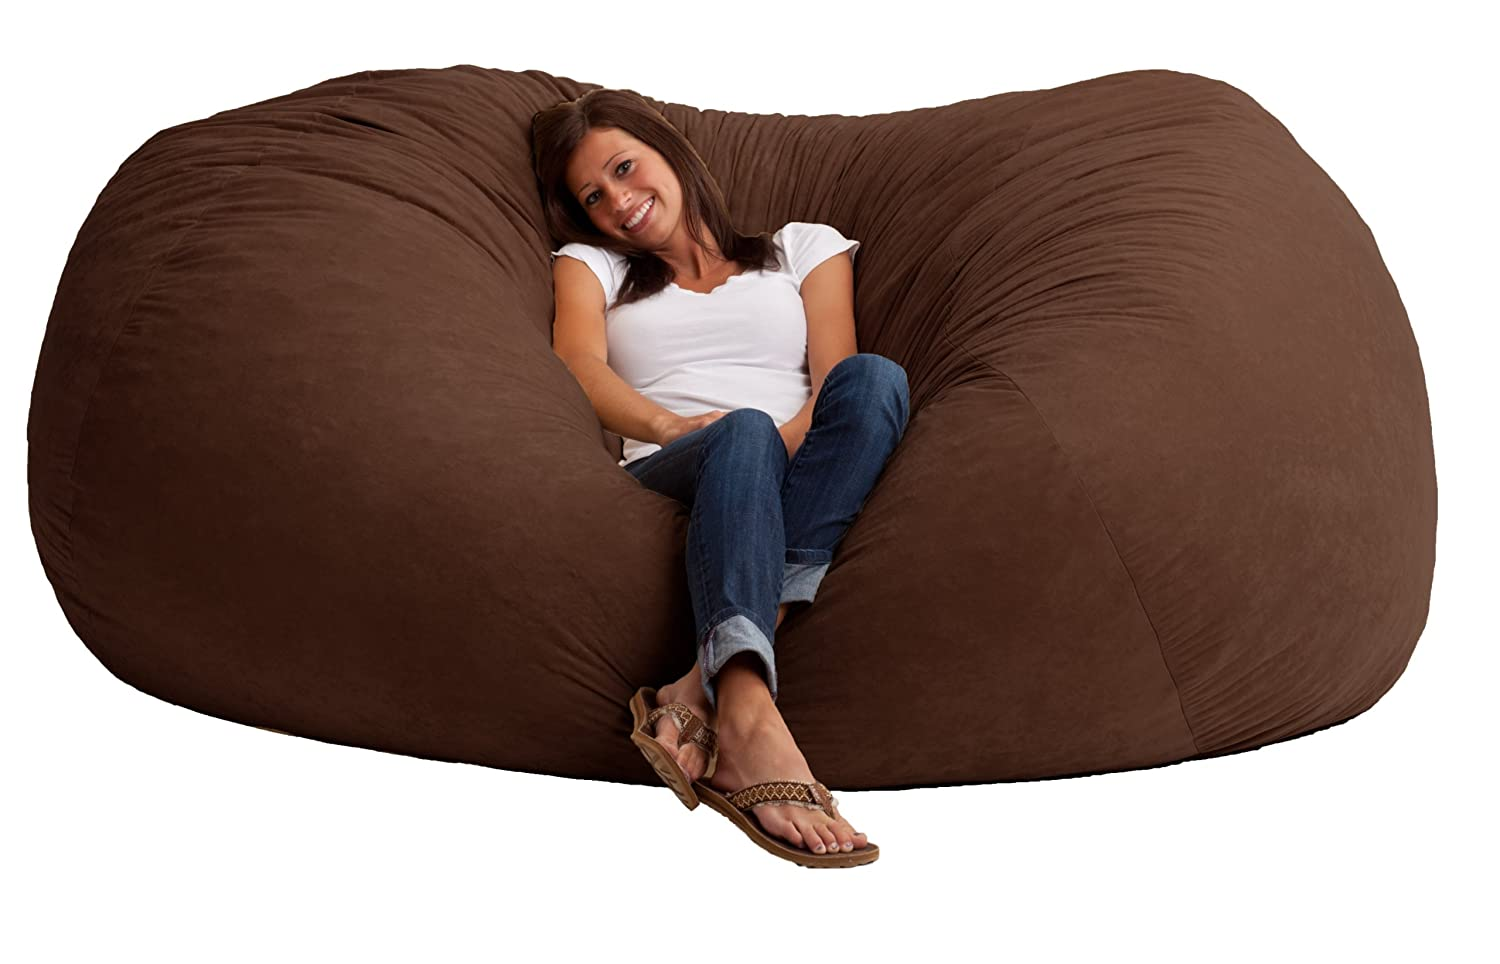 Bean Bags Chair Chair Sofa Oversized Furniture Recline Comfort Seat Lounge